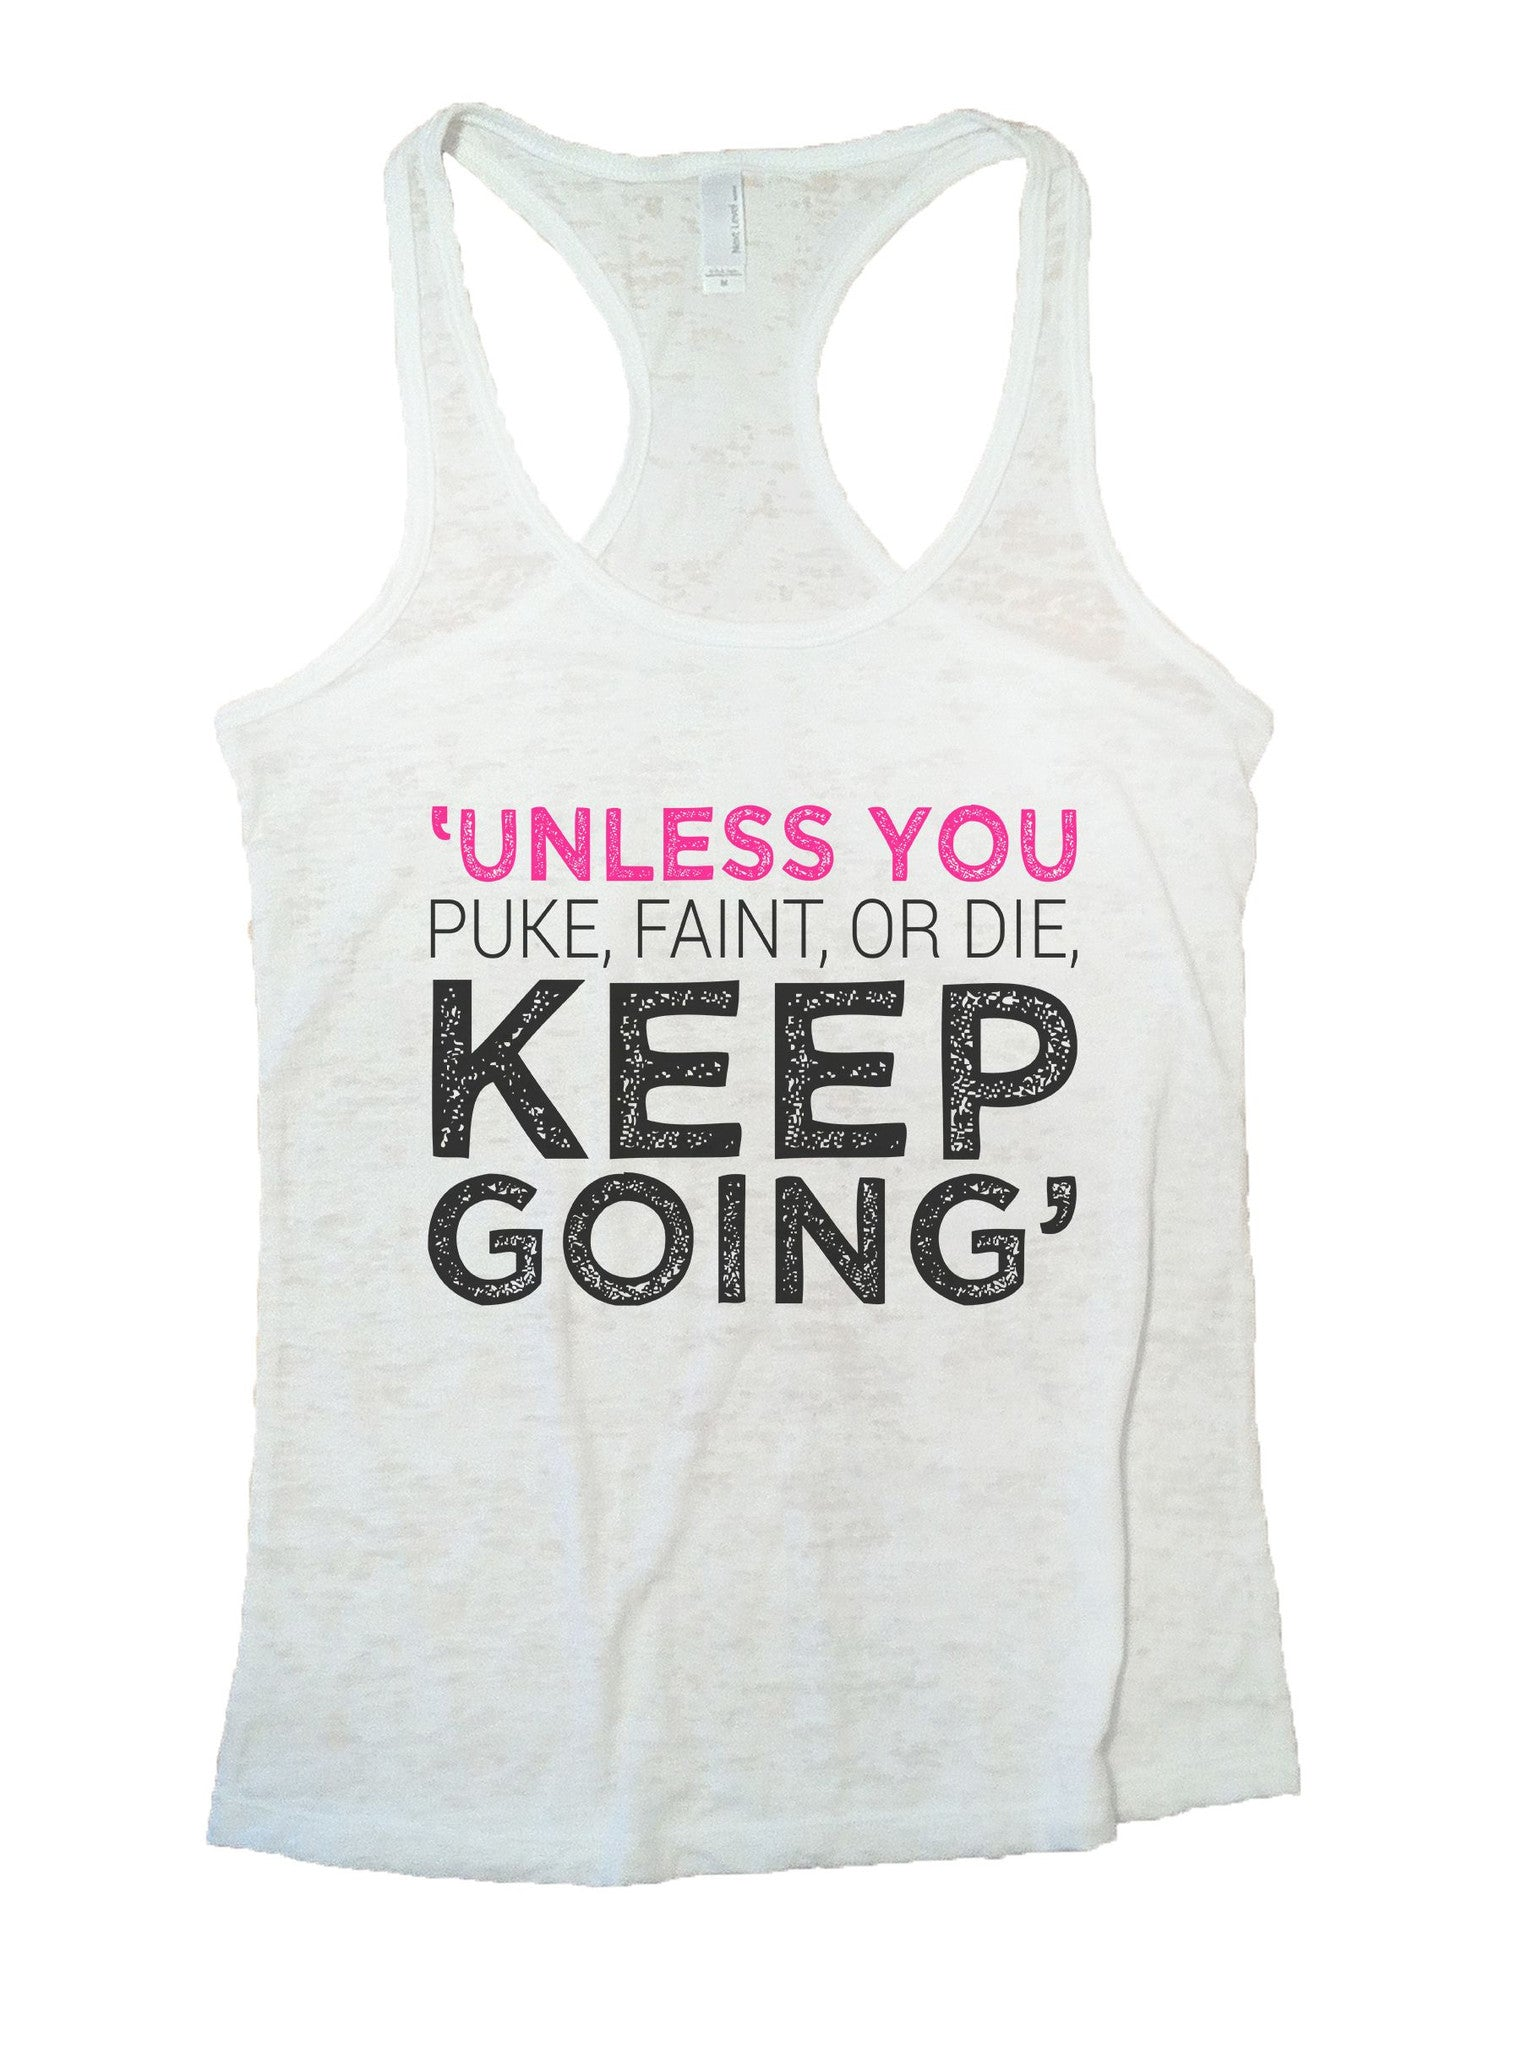 Unless You Puke, Faint, Or Die. Keep Going' Burnout Tank Top By BurnoutTankTops.com - 1104 - Funny Shirts Tank Tops Burnouts and Triblends  - 6